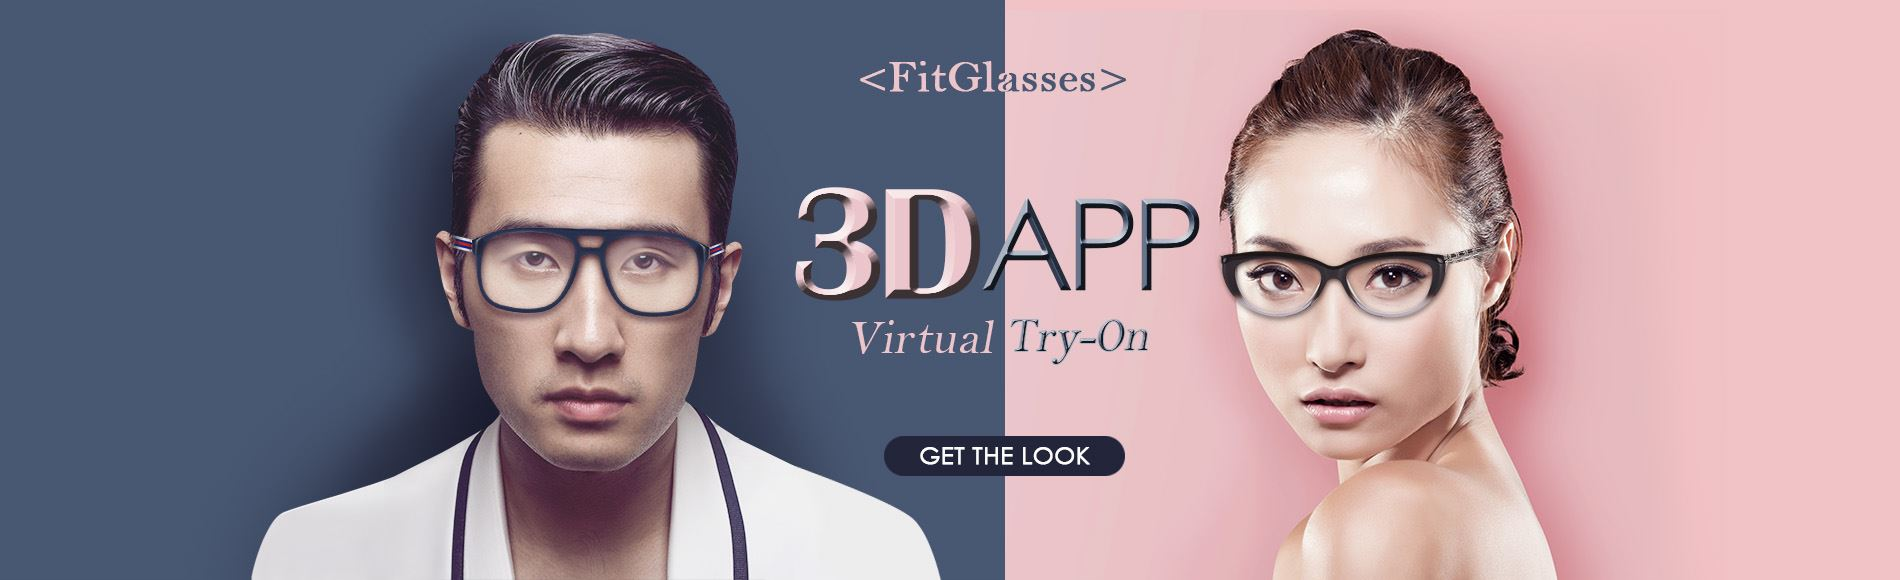 3D eyeware app, eyeware try on, sunglasses virtual try-on, glasses try-on